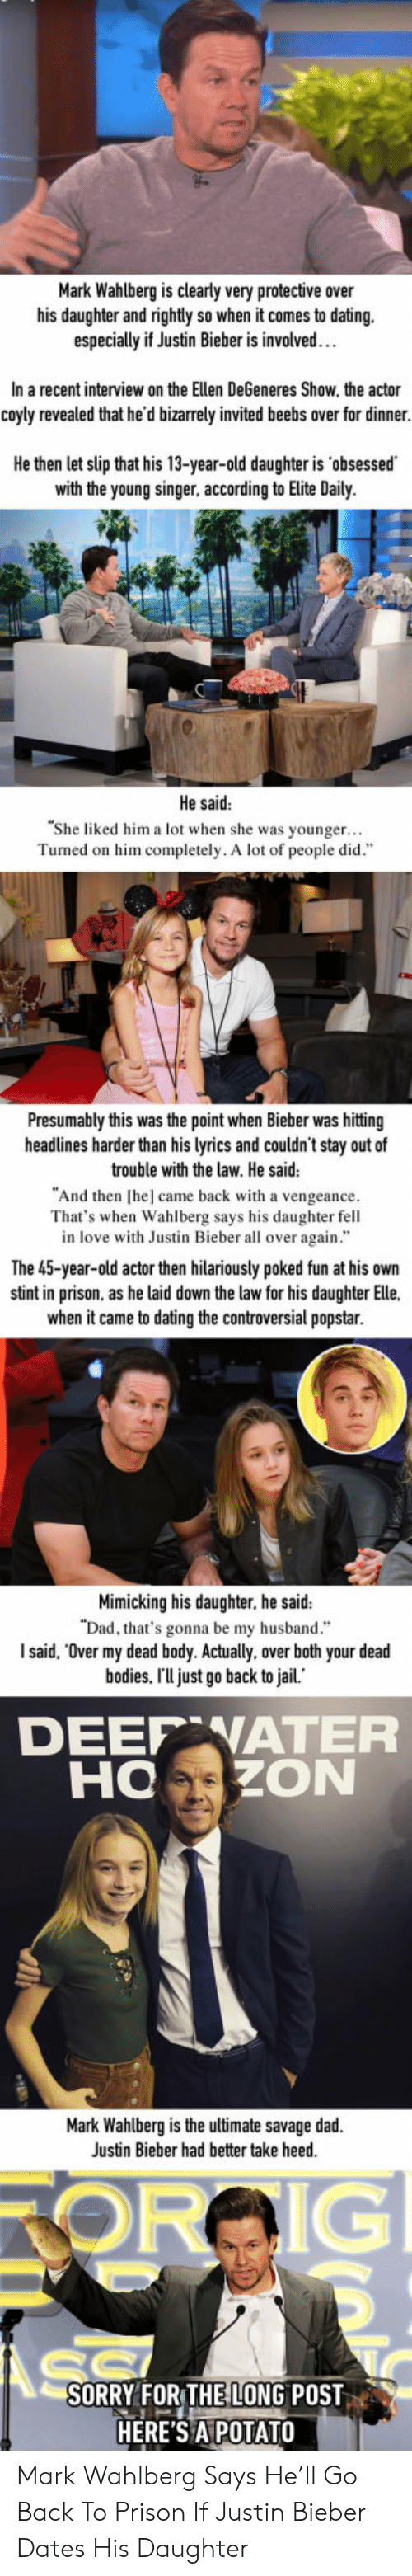 "over my dead body: Mark Wahlberg is clearly very protective over  his daughter and rightly so when it comes to dating.  especially if Justin Bieber is involved…  In a recent interview on the Ellen DeGeneres Show, the actor  coyly revealed that he'd bizarrely invited beebs over for dinner.  He then let slip that his 13-year-old daughter is 'obsessed  with the young singer, according to Elite Daily.  He said  She liked him a lot when she was younger...  Turned on him completely. A lot of people did""  Presumably this was the point when Bieber was hittng  headlines harder than his lyrics and couldn't stay out of  trouble with the law. He said  ""And then [hel came back with a vengeance  That's when Wahlberg says his daughter fell  in love with Justin Bieber all over again.""  The 45-year-old actor then hilariously poked fun at his own  stint in prison, as he laid down the law for his daughter Elle.  when it came to dating the controversial popstar.  Mimicking his daughter, he said:  that's gonna be my husband.""  I said, ""Over my dead body. Actually, over both your dead  bodies. I'U just go back to jail.  DEEP WATEFR  HOZON  Mark Wahlberg is the ultimate savage dad.  Justin Bieber had better take heed.  SORRY FOR THE LONG POST  HERE'S APOTATO Mark Wahlberg Says He'll Go Back To Prison If Justin Bieber Dates His Daughter"